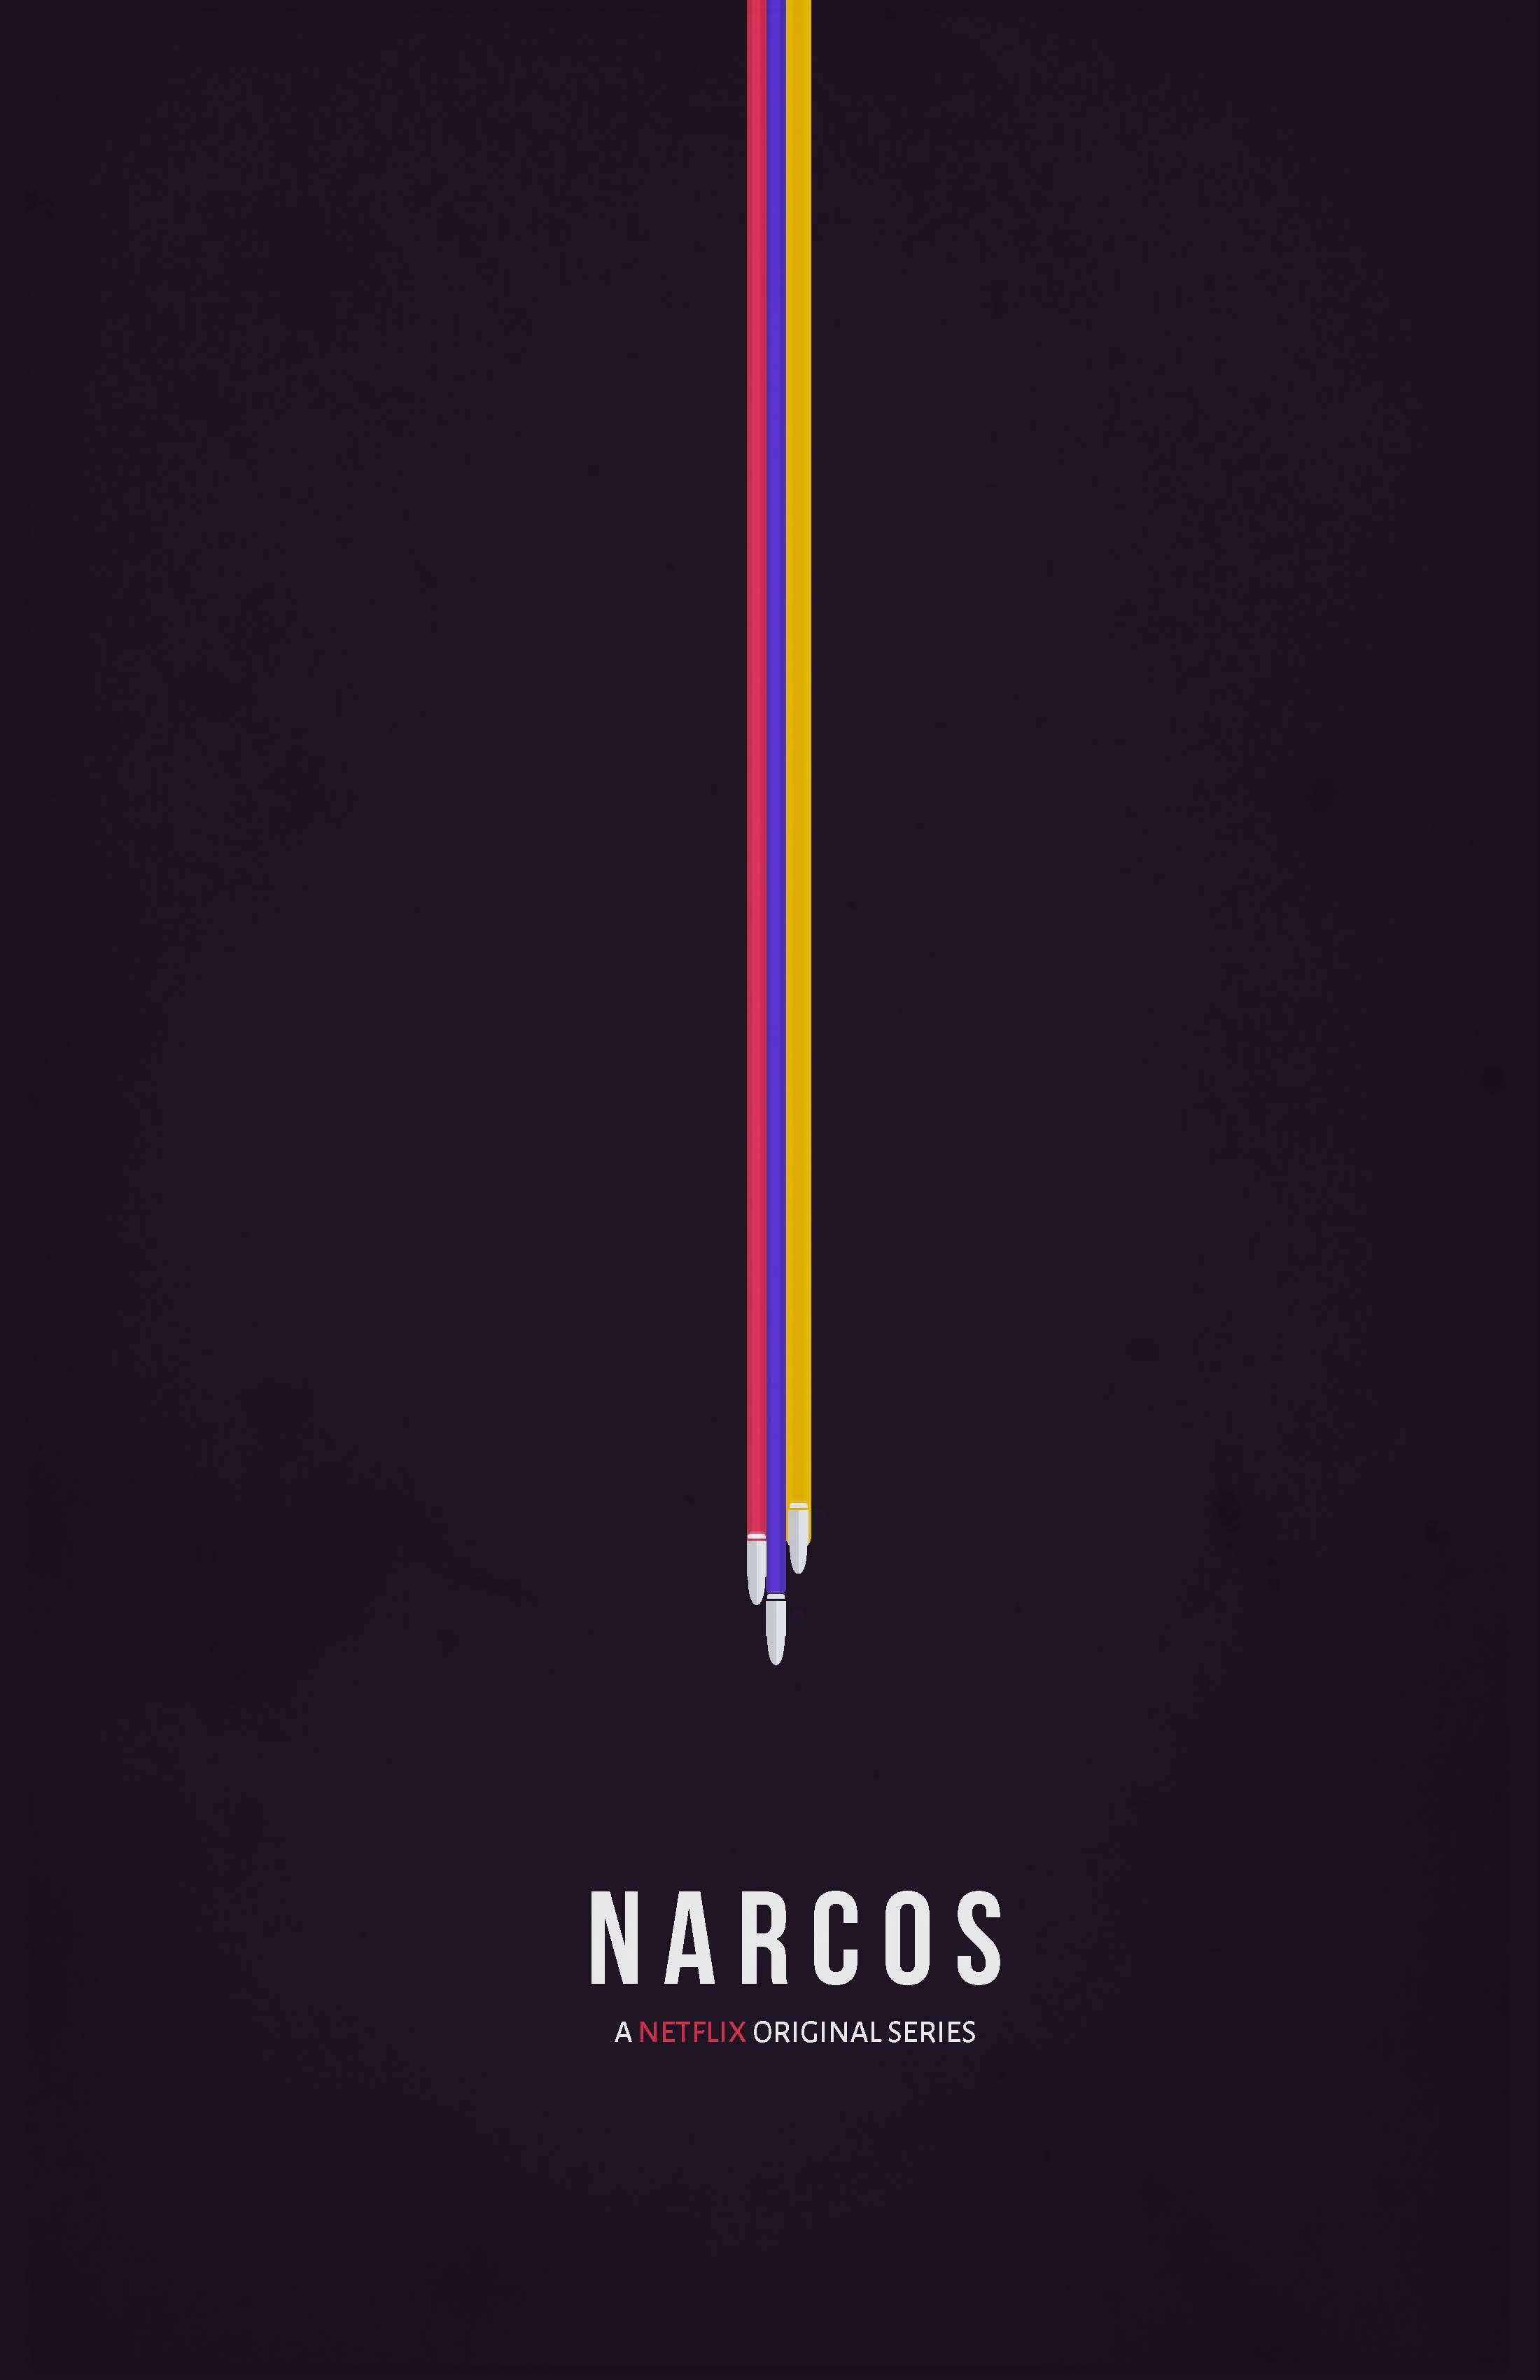 Narcos minimal poster by alberto picazo pennora concept narcos minimal poster by alberto picazo fandeluxe Choice Image